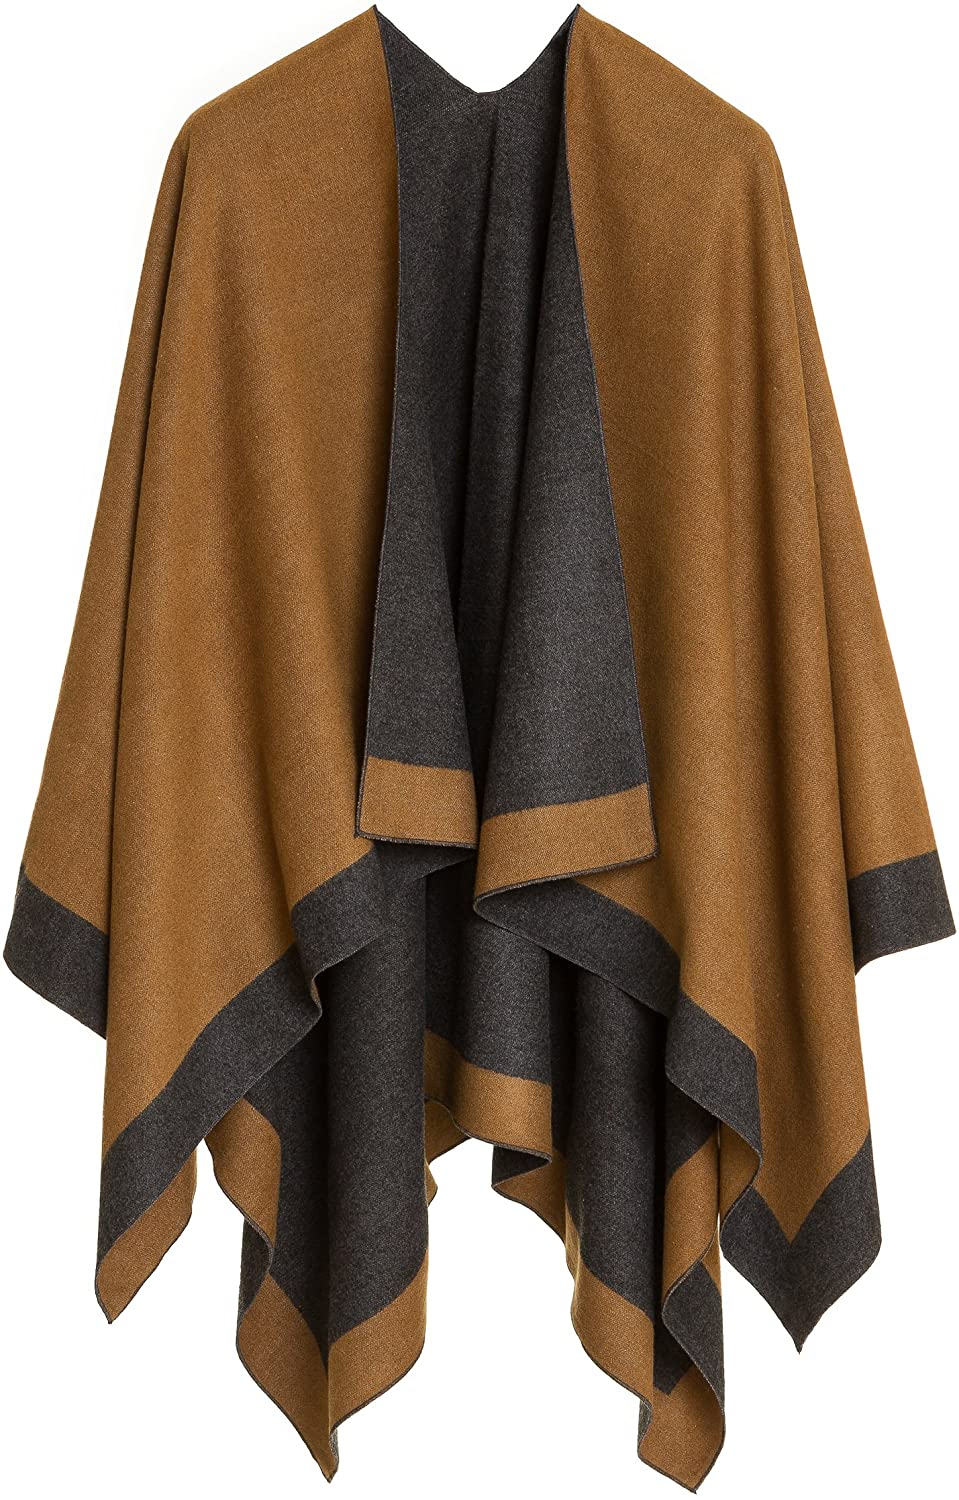 security MELIFLUOS DESIGNED IN SPAIN Women's excellence Ruana Poncho Wrap Shawl Cape